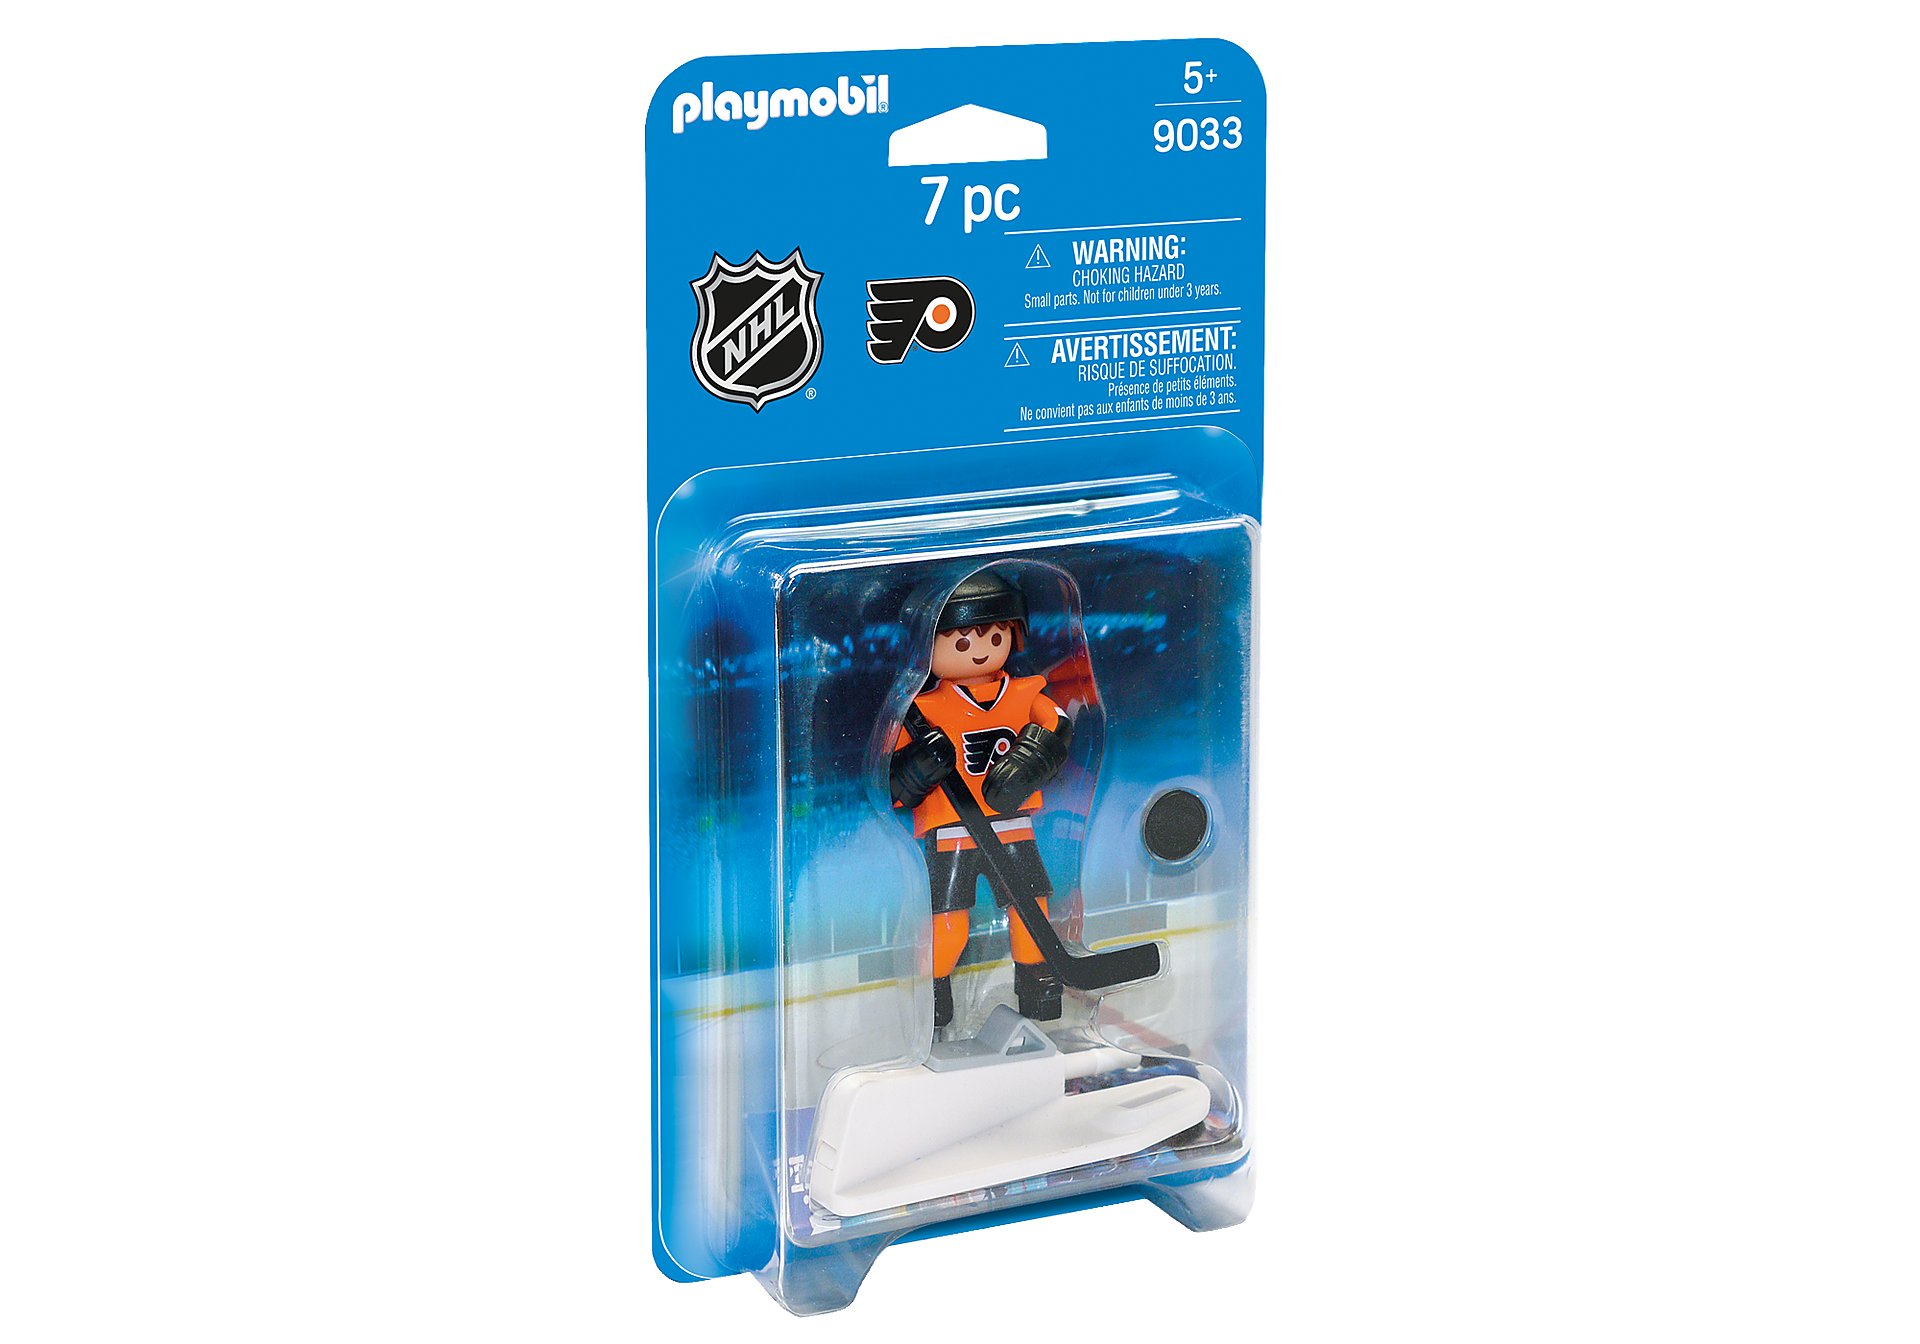 http://media.playmobil.com/i/playmobil/9033_product_box_front/NHL® Philadelphia Flyers® Player